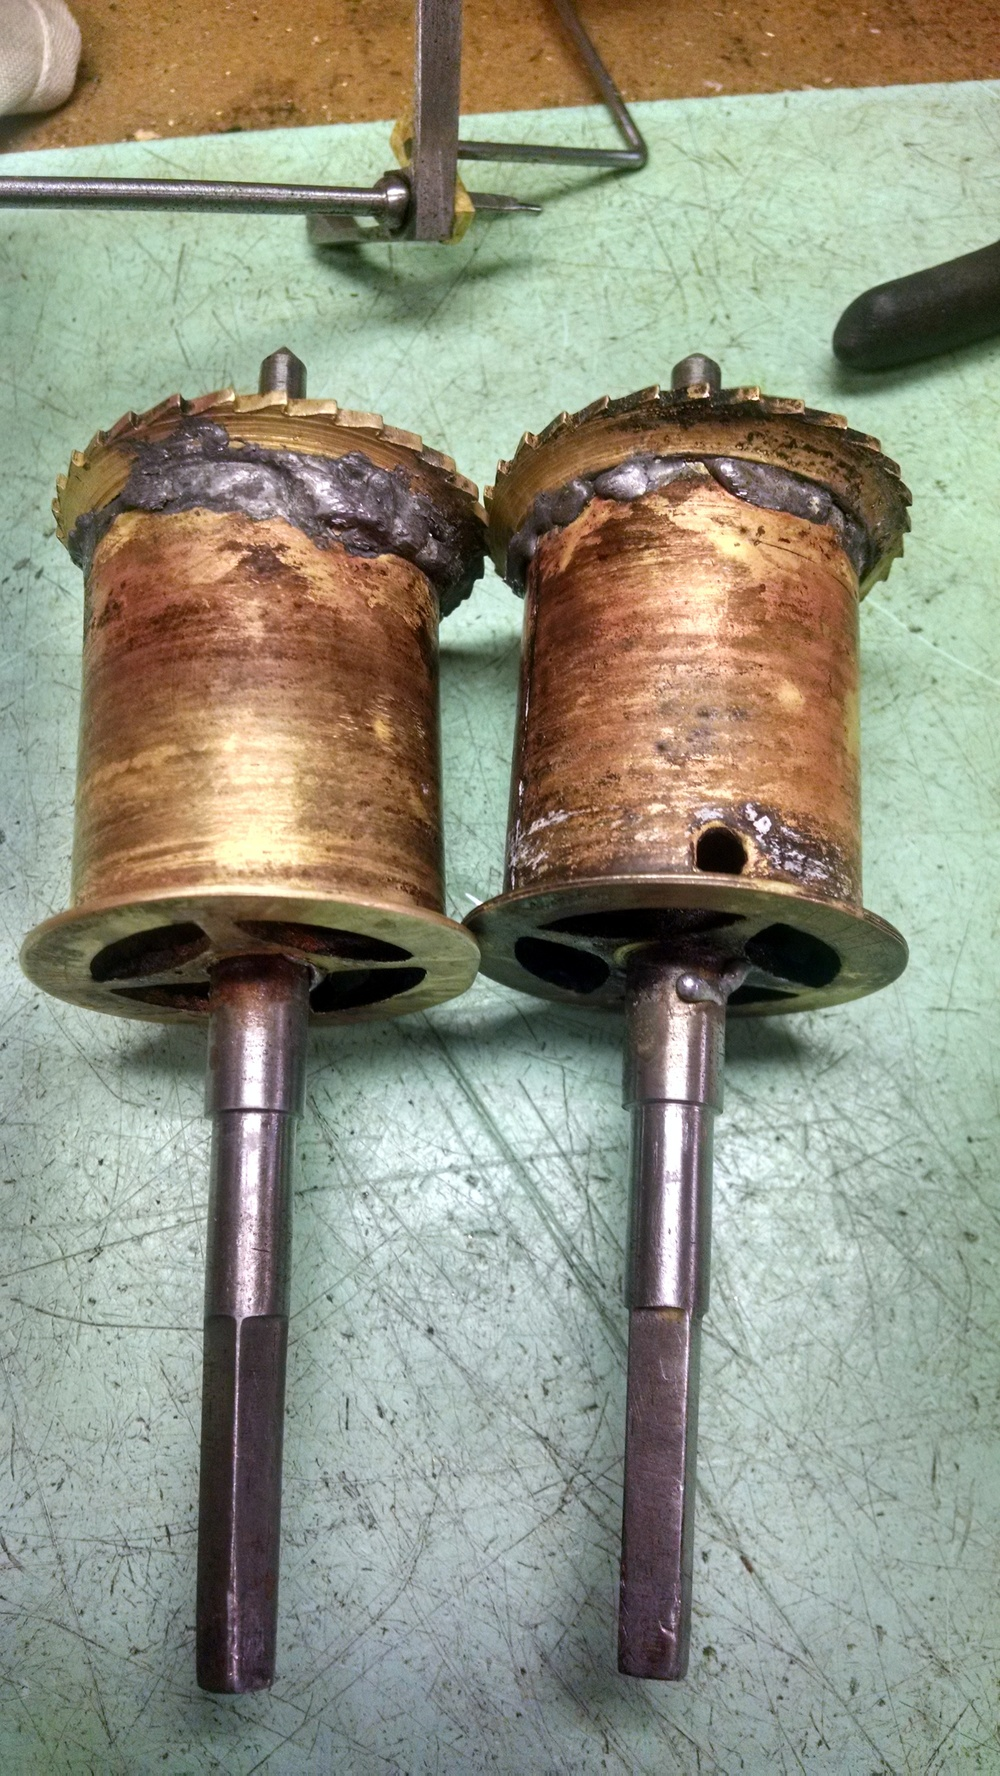 These are the winding barrels where the cable is held when the clock is wound. They were poorly repaired by a previous repair person. You can see all the extra solder.